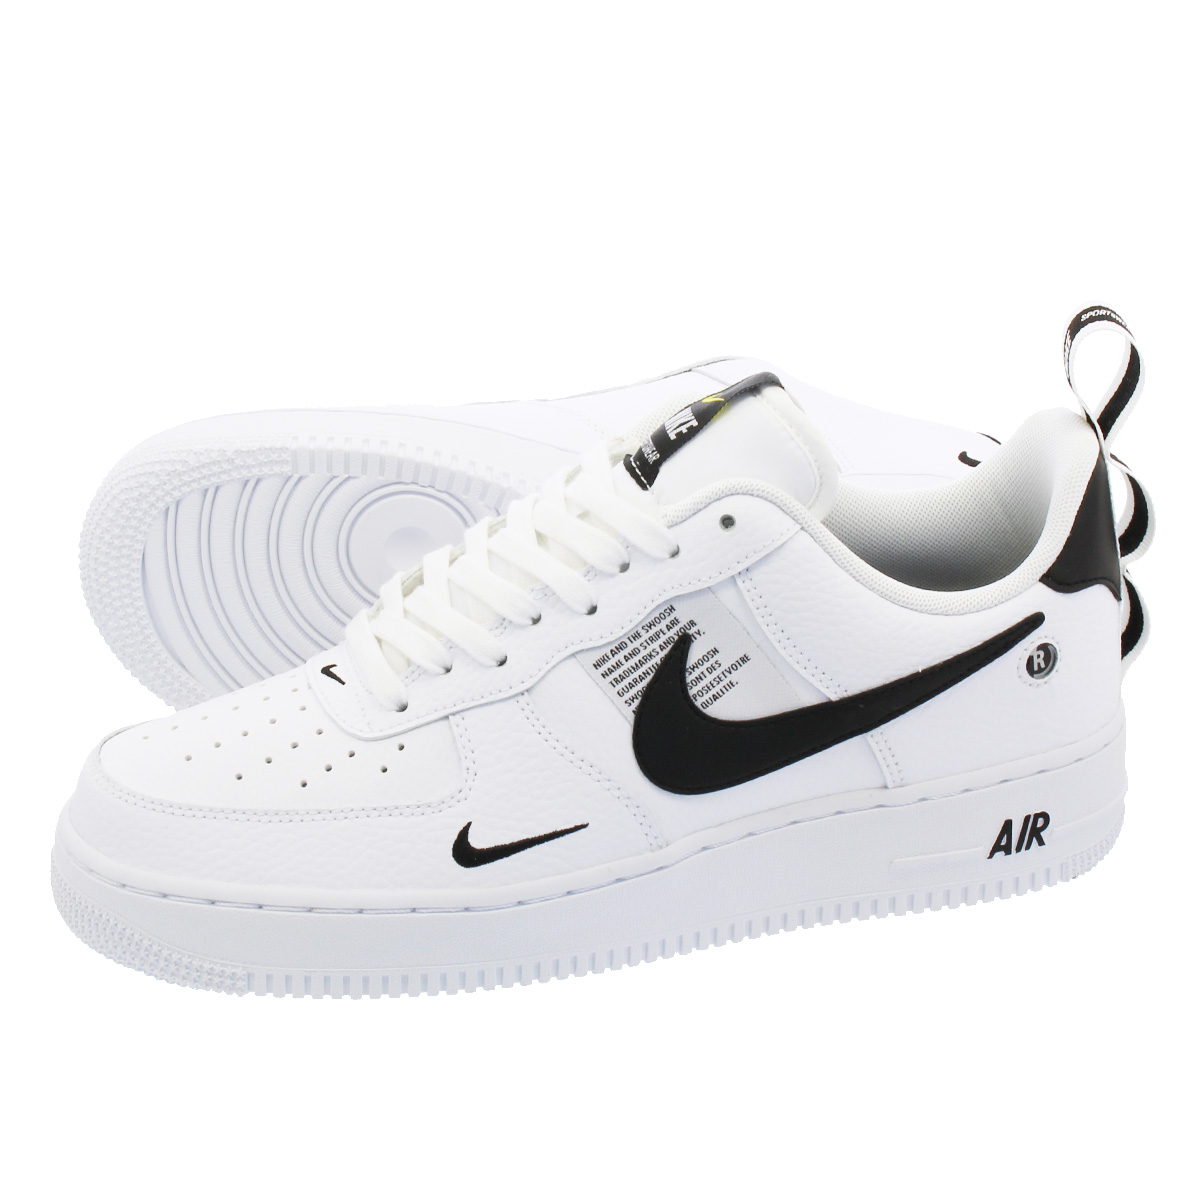 NIKE AIR FORCE 1 '07 LV8 UTILITY Nike air force 1 '07 LV8 utility WHITEWHITEBLACKTOUR YELLOW aj7747 100